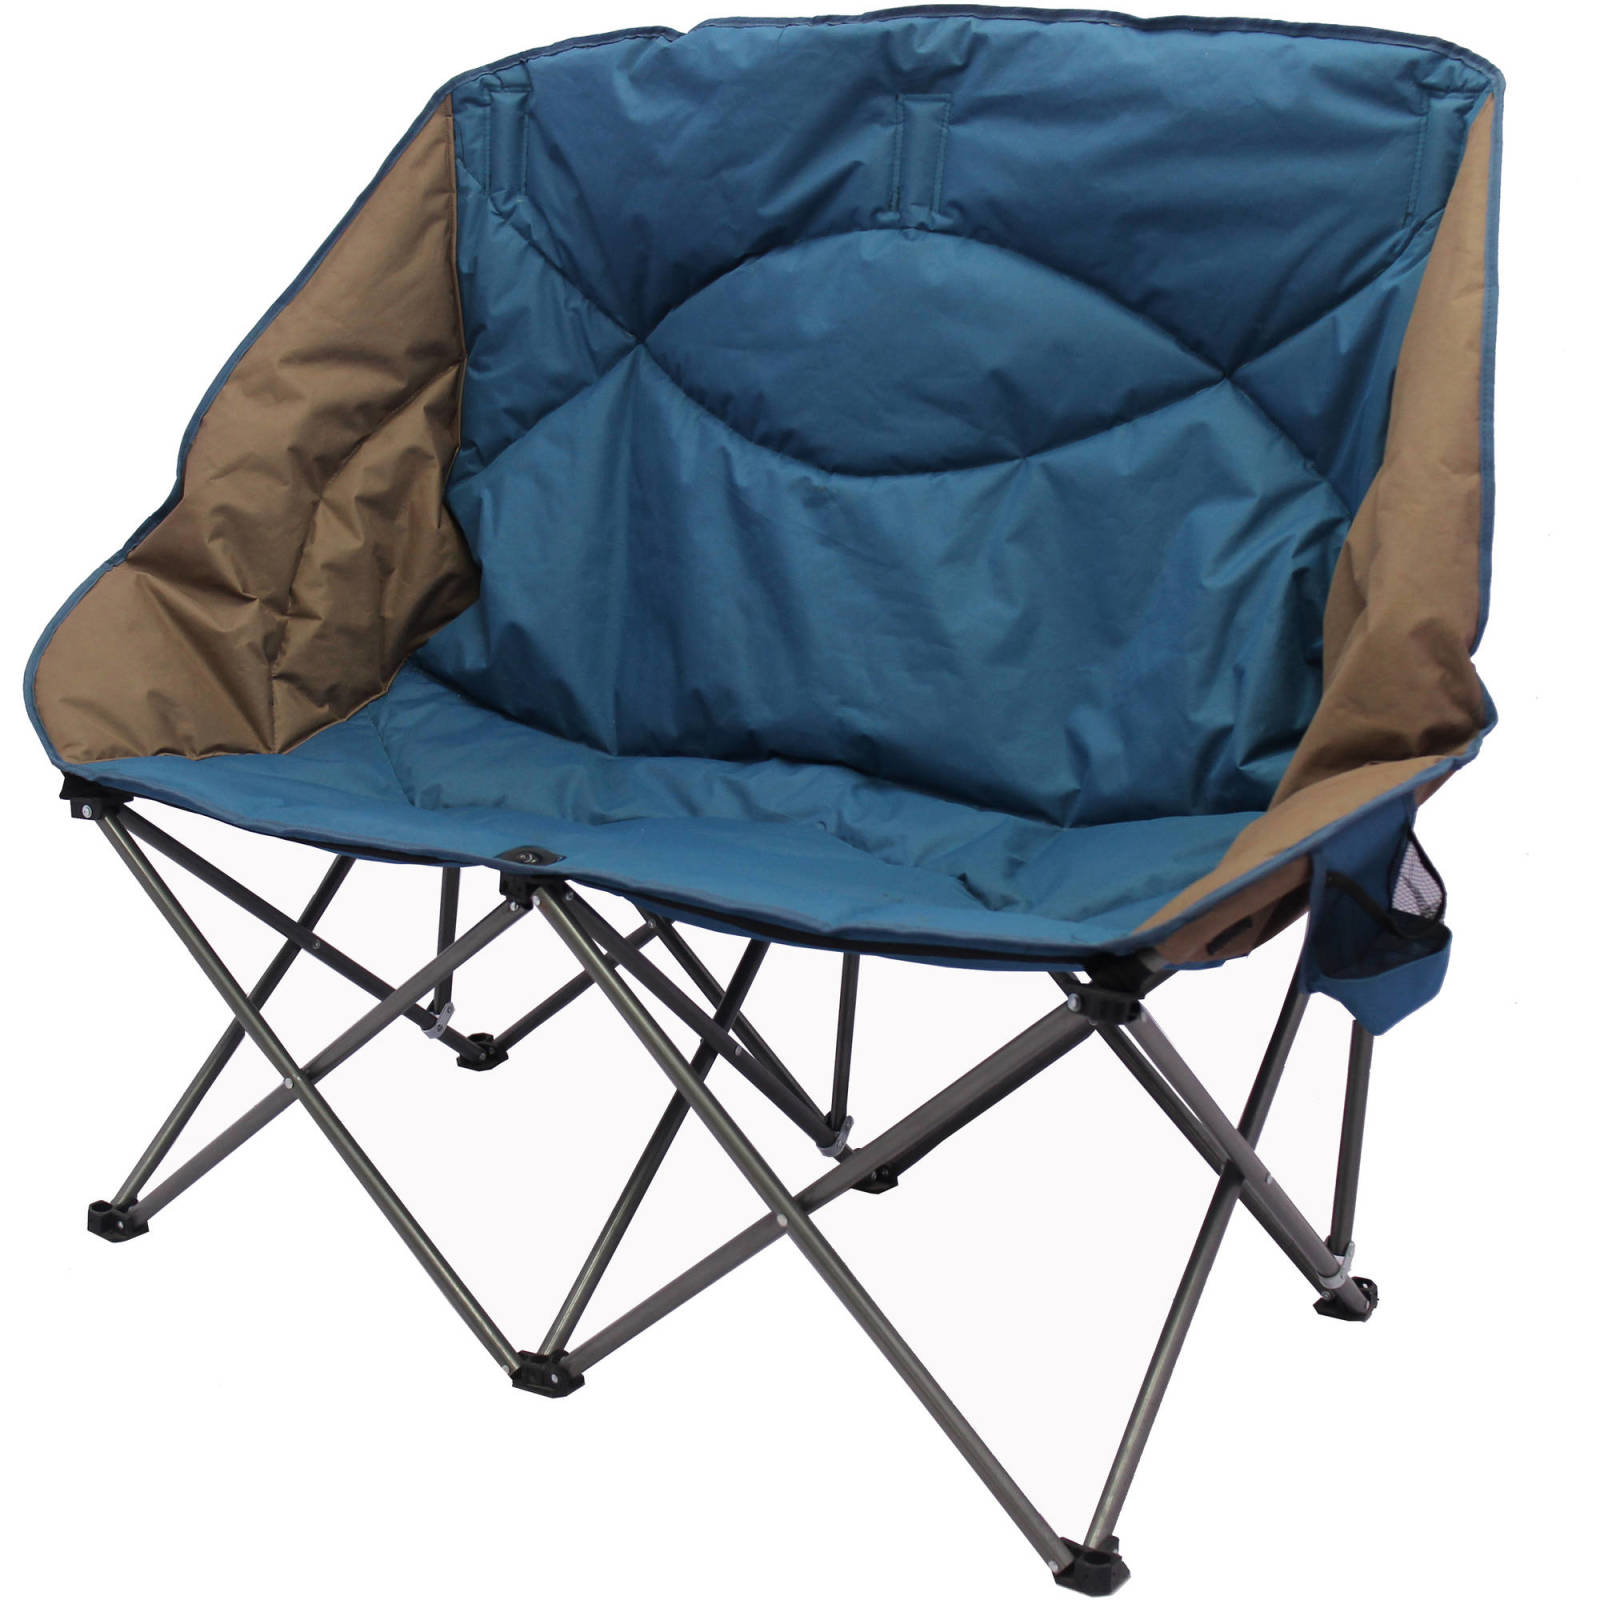 Outdoor Camping Chair double folding camping chair portable camp beach outdoor loveseat